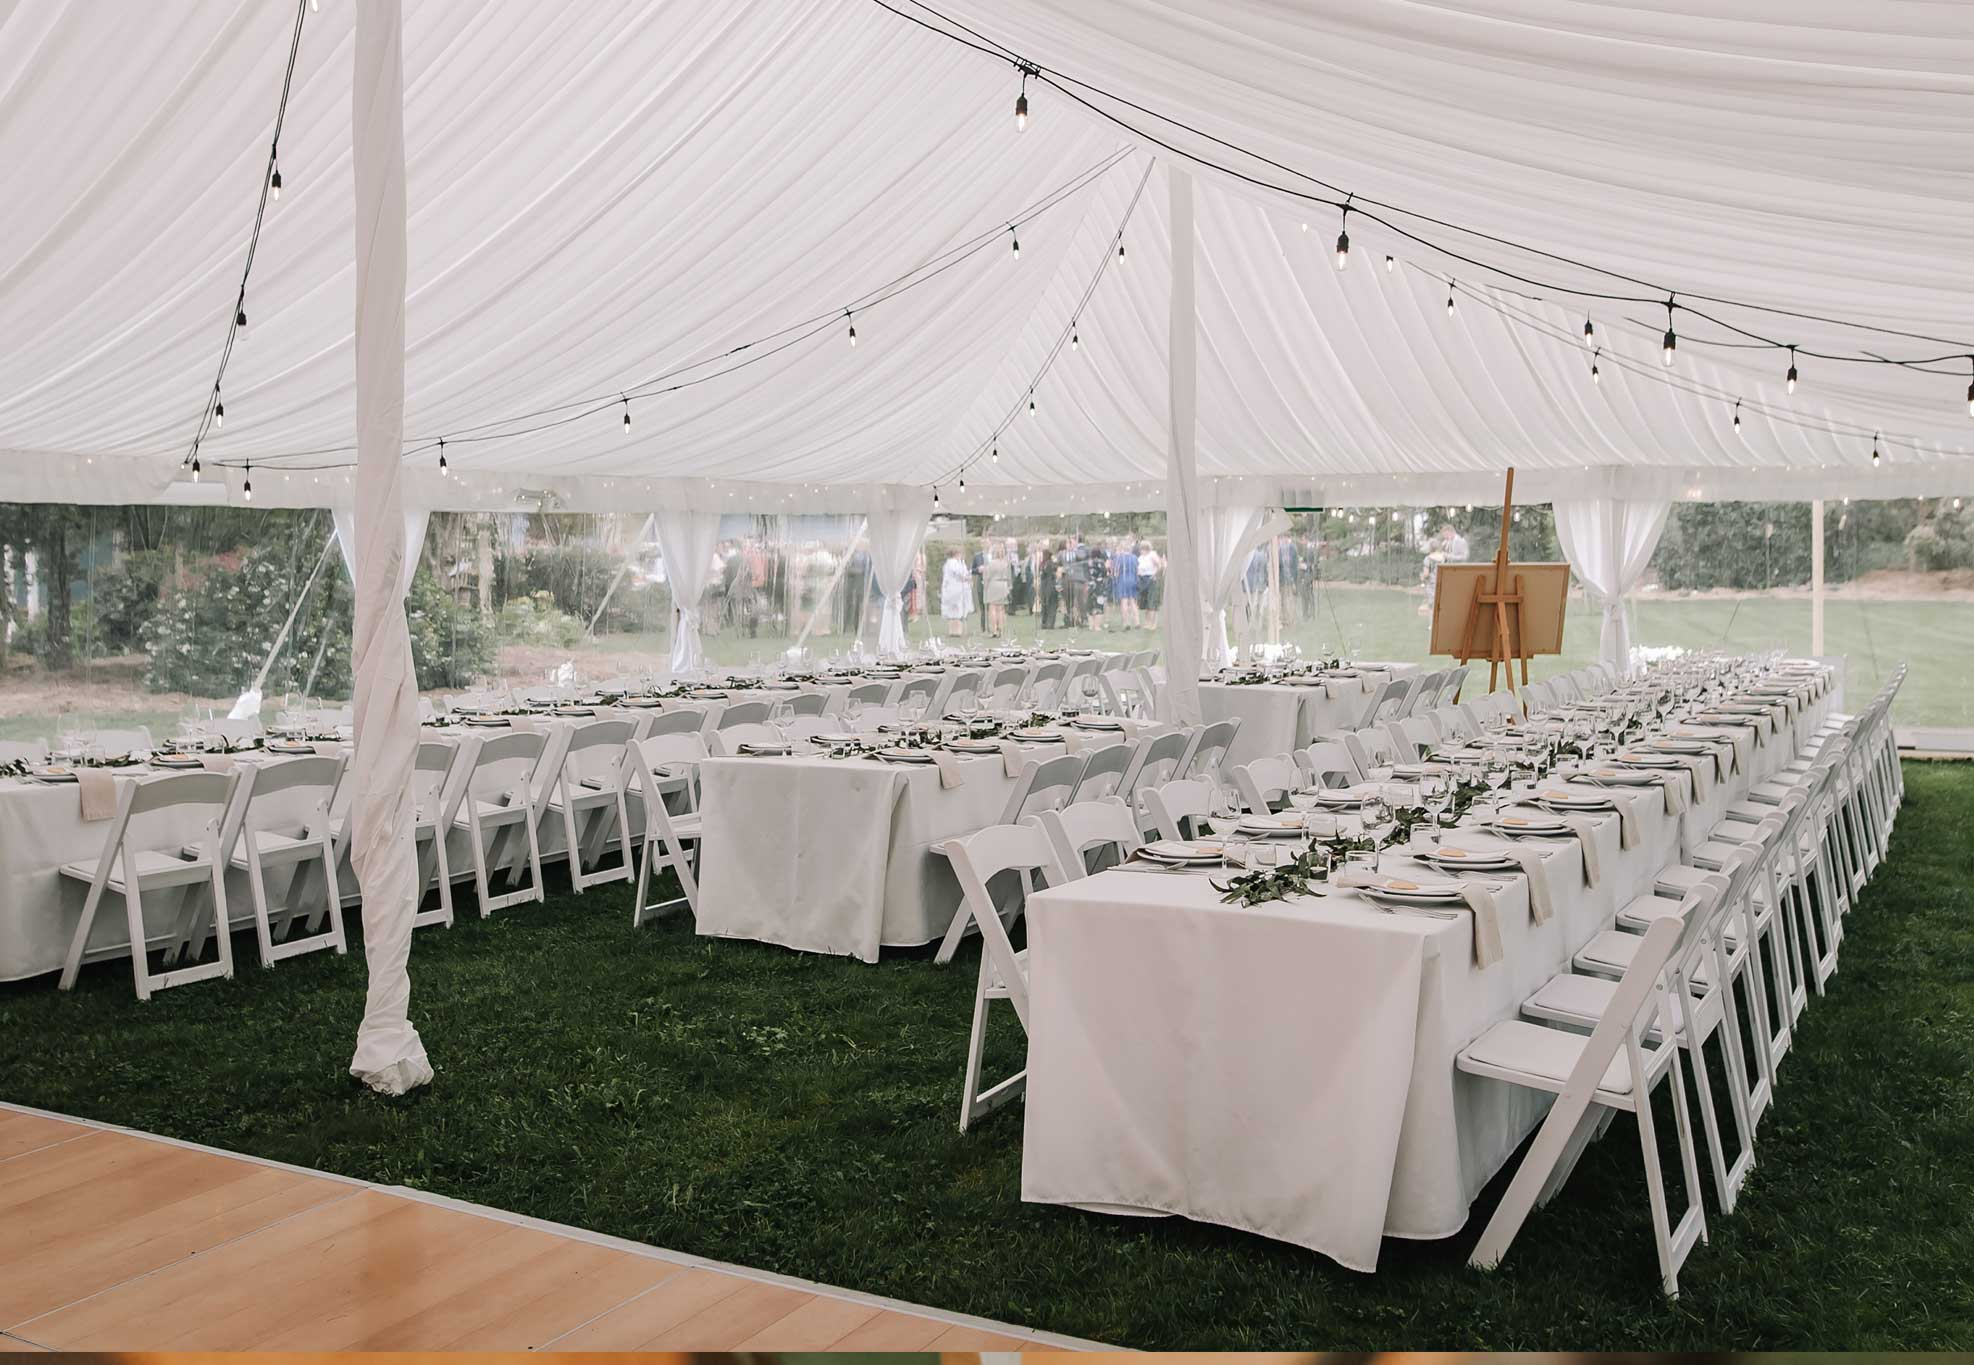 silk-estate-marquee-weddings-and-events-styling-and-hire-furniture-chairs-bella-folding